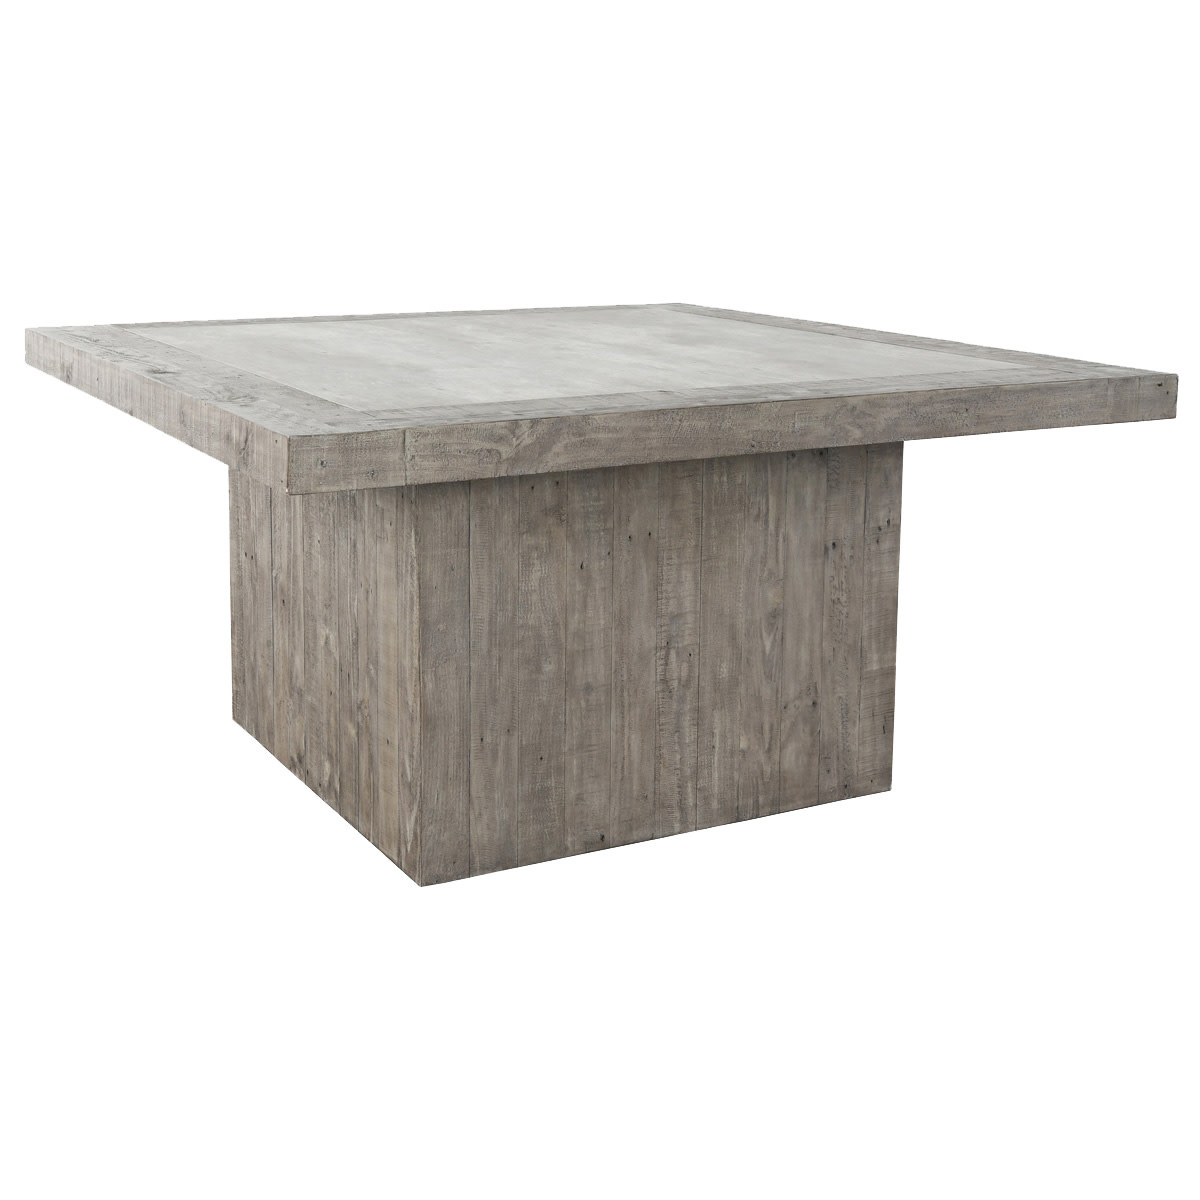 "SEDONA 60"" SQUARE TABLE"